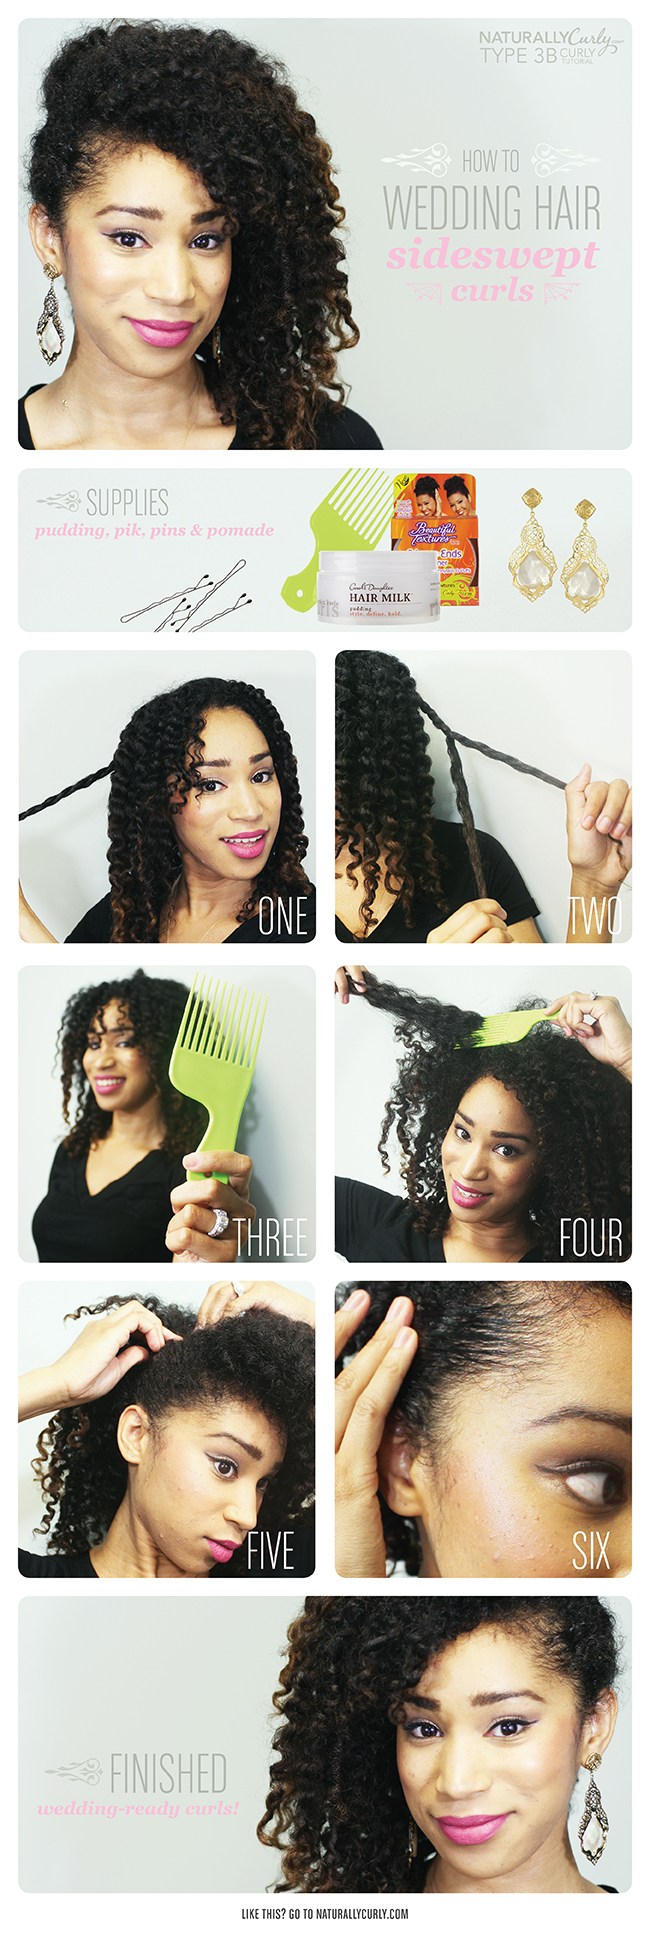 Curly Wedding Hairstyle Tutorial Video Naturallycurly